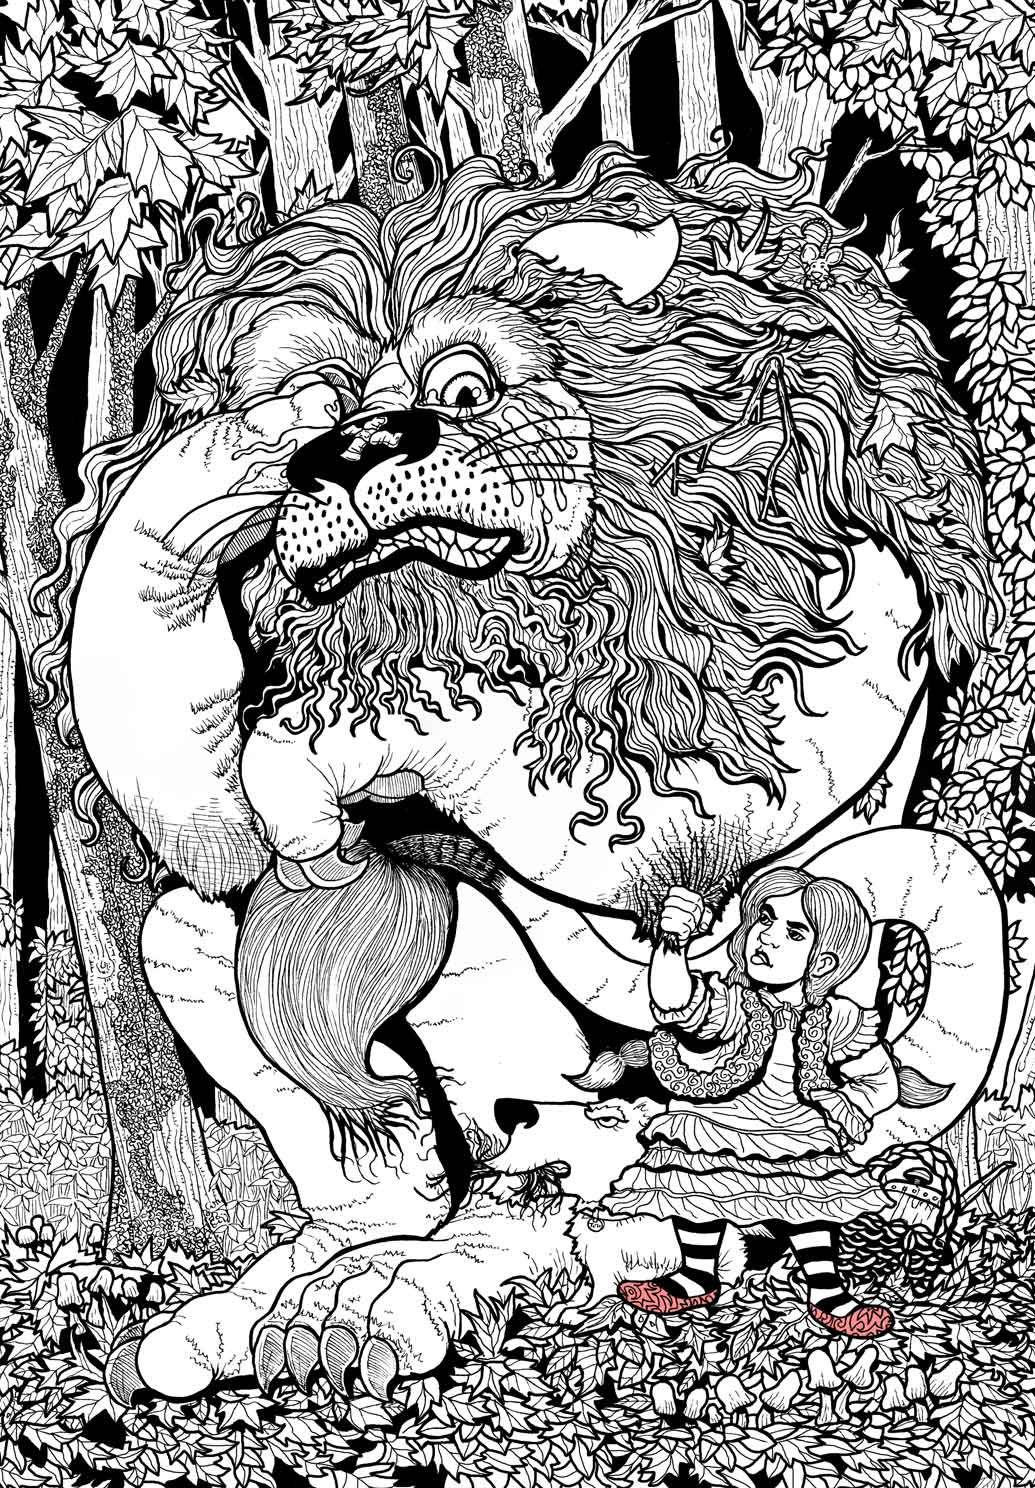 Wizard Of Oz Coloring Book By Ethan Mongin At Coroflot Com Monster Coloring Pages Coloring Books Wizard Of Oz